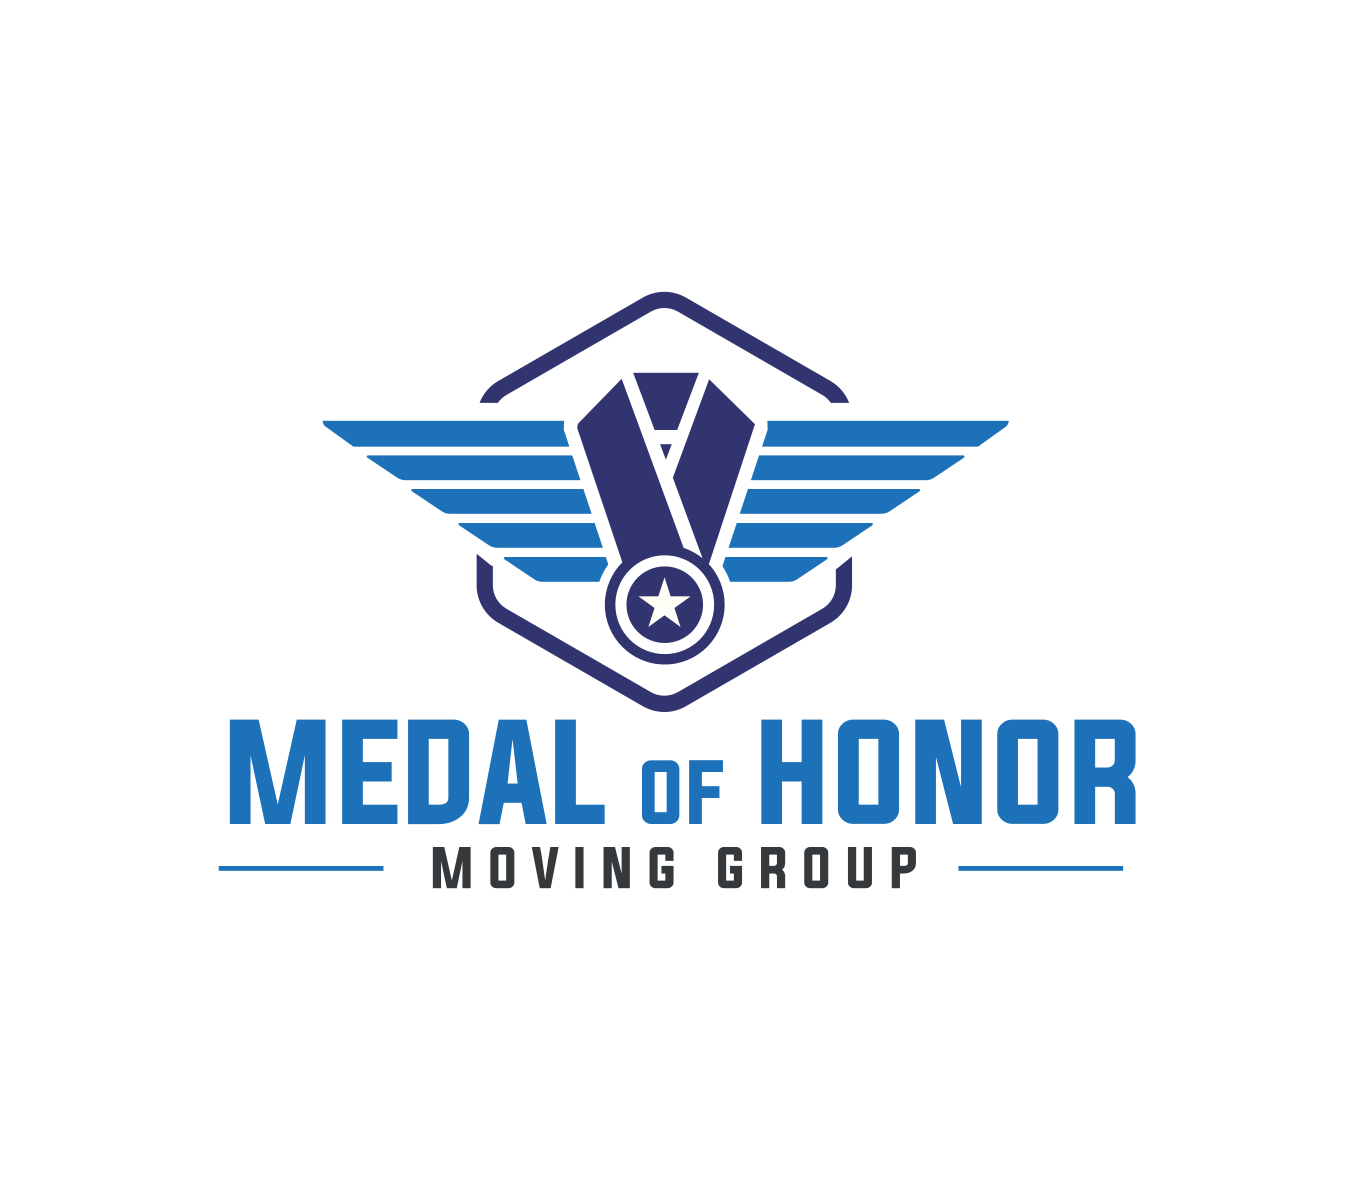 Medal Of Honor Moving Group logo